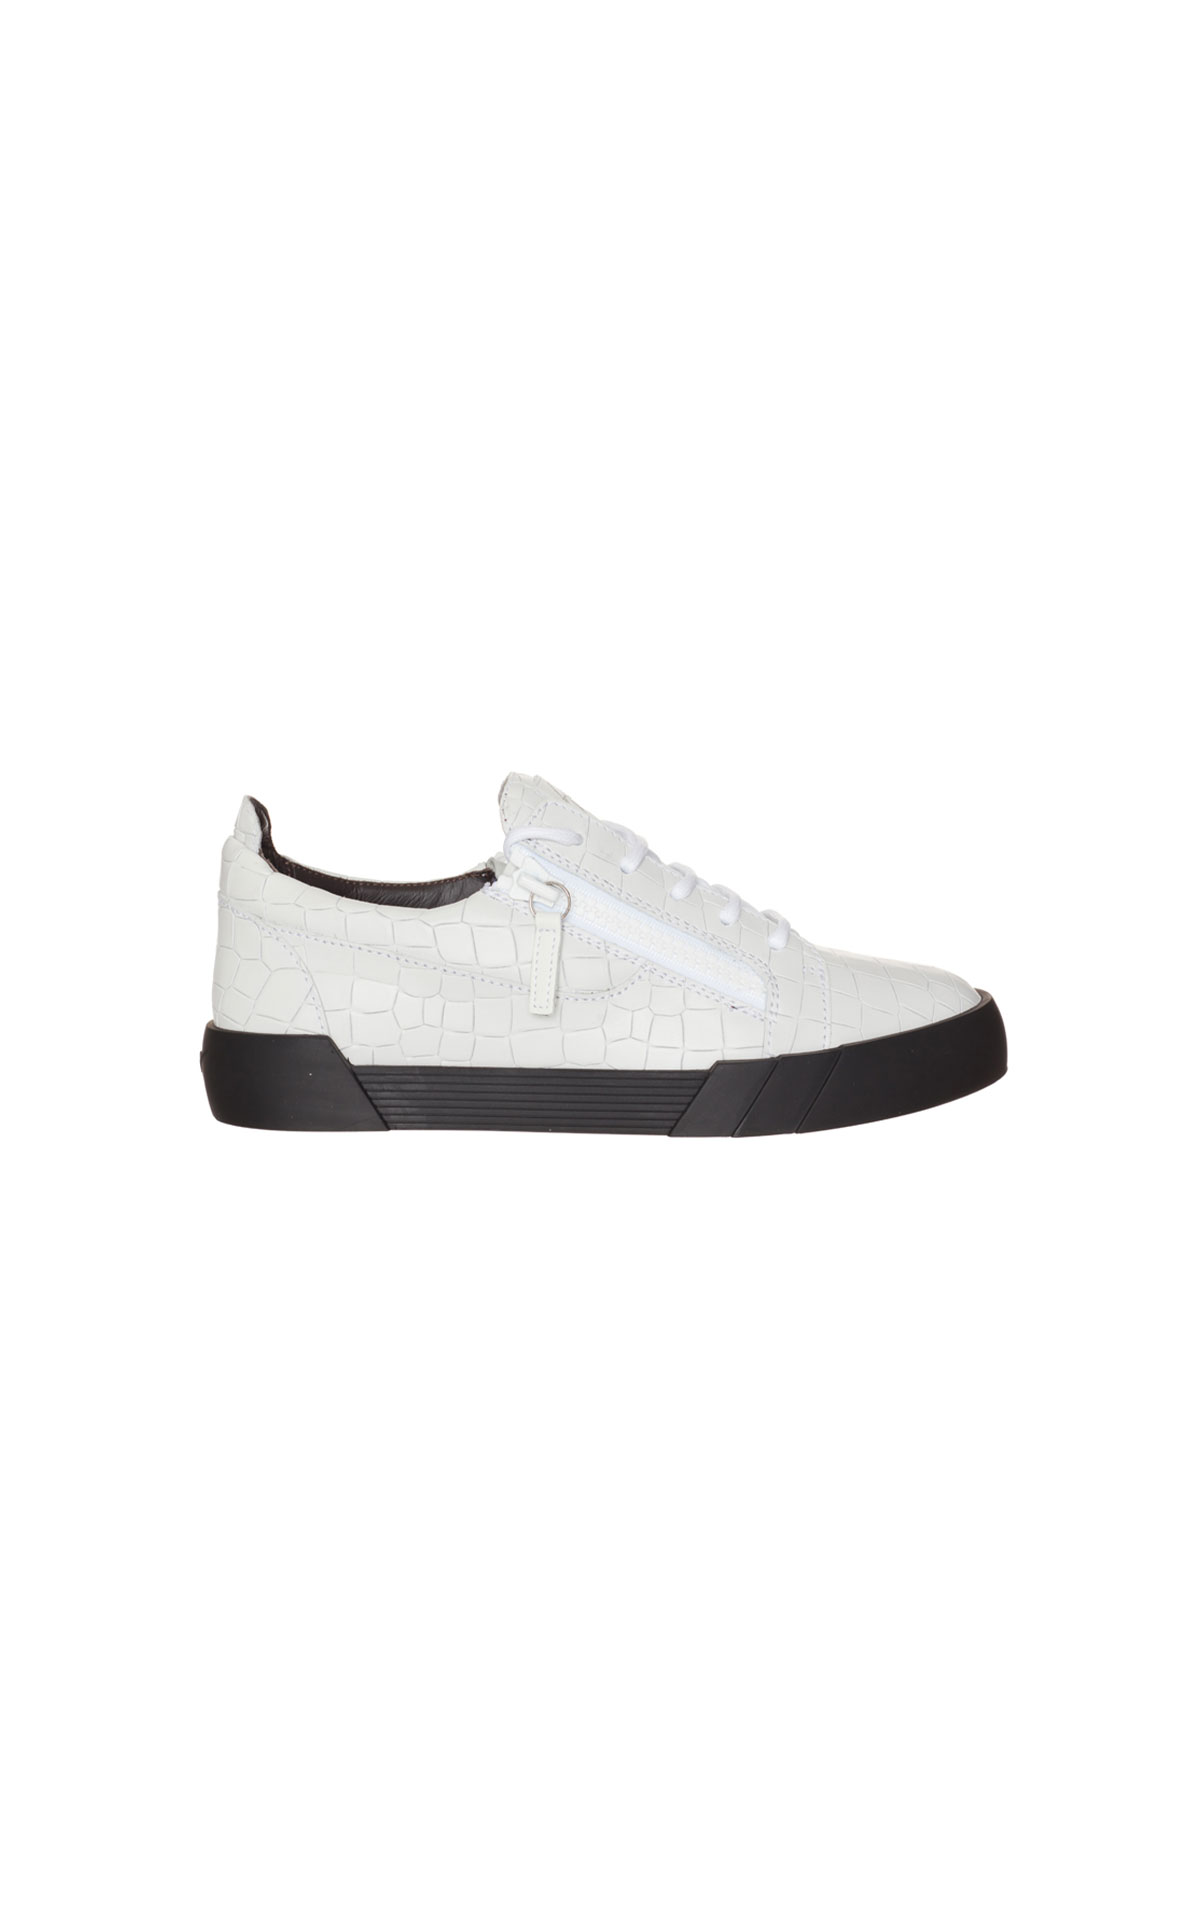 Giuseppe Zanotti Men's cross embossed shark sole frankie from Bicester Village